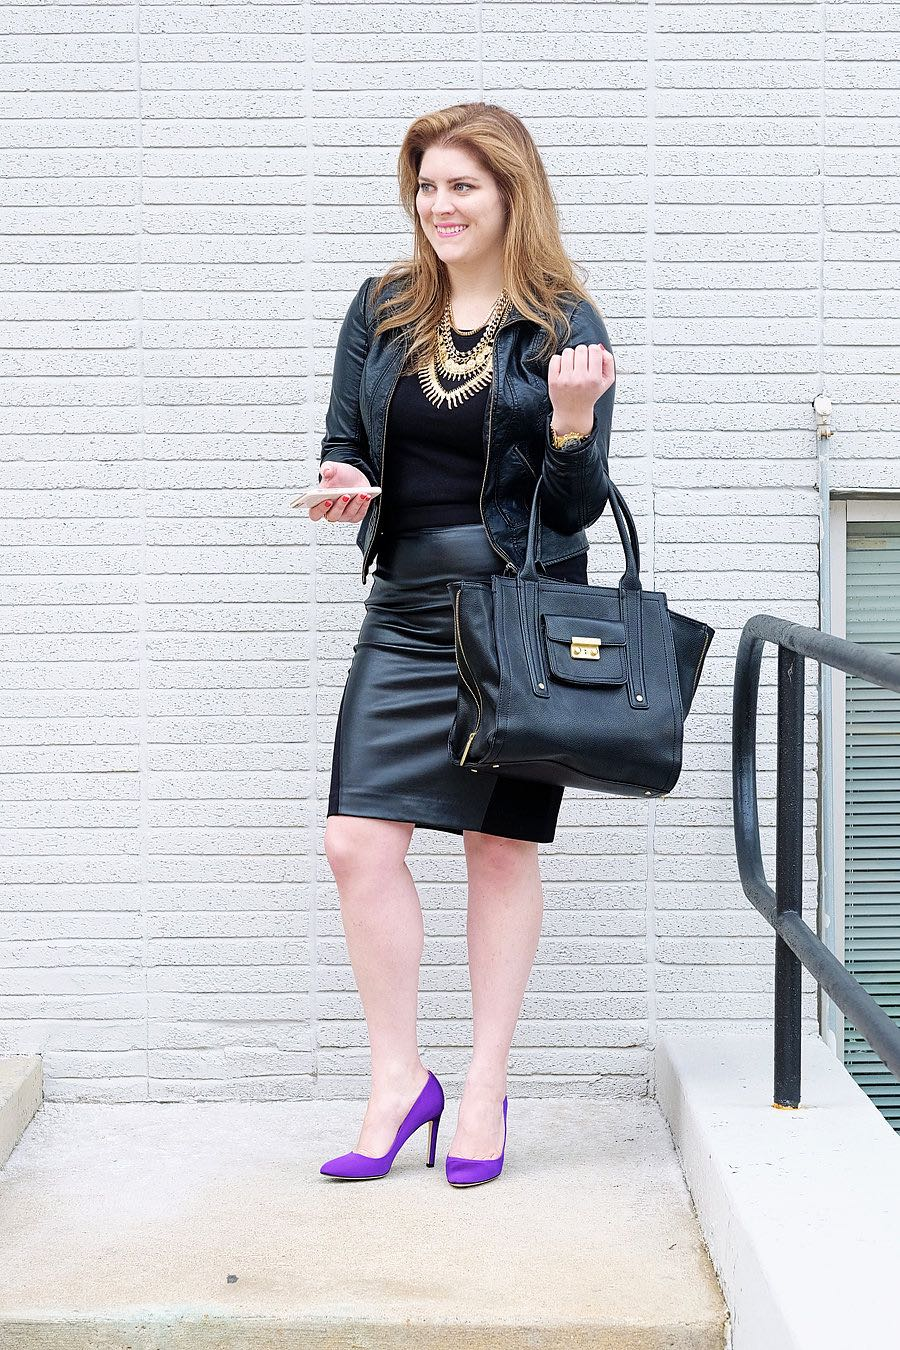 How to Wear Leather for Work - A Study in Chic